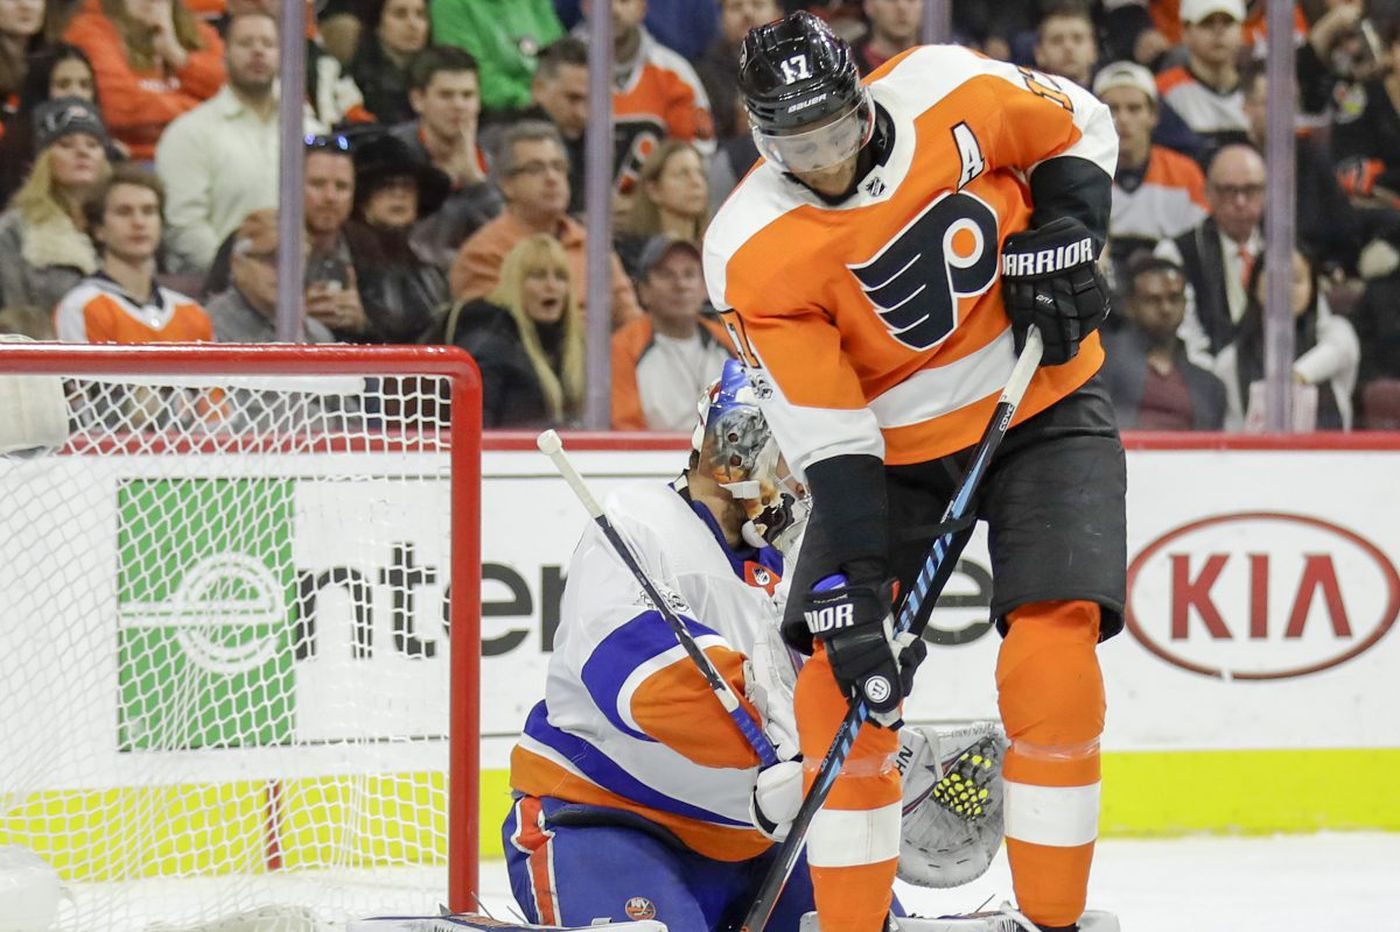 Flyers looking to change fortunes on Western Canada road trip